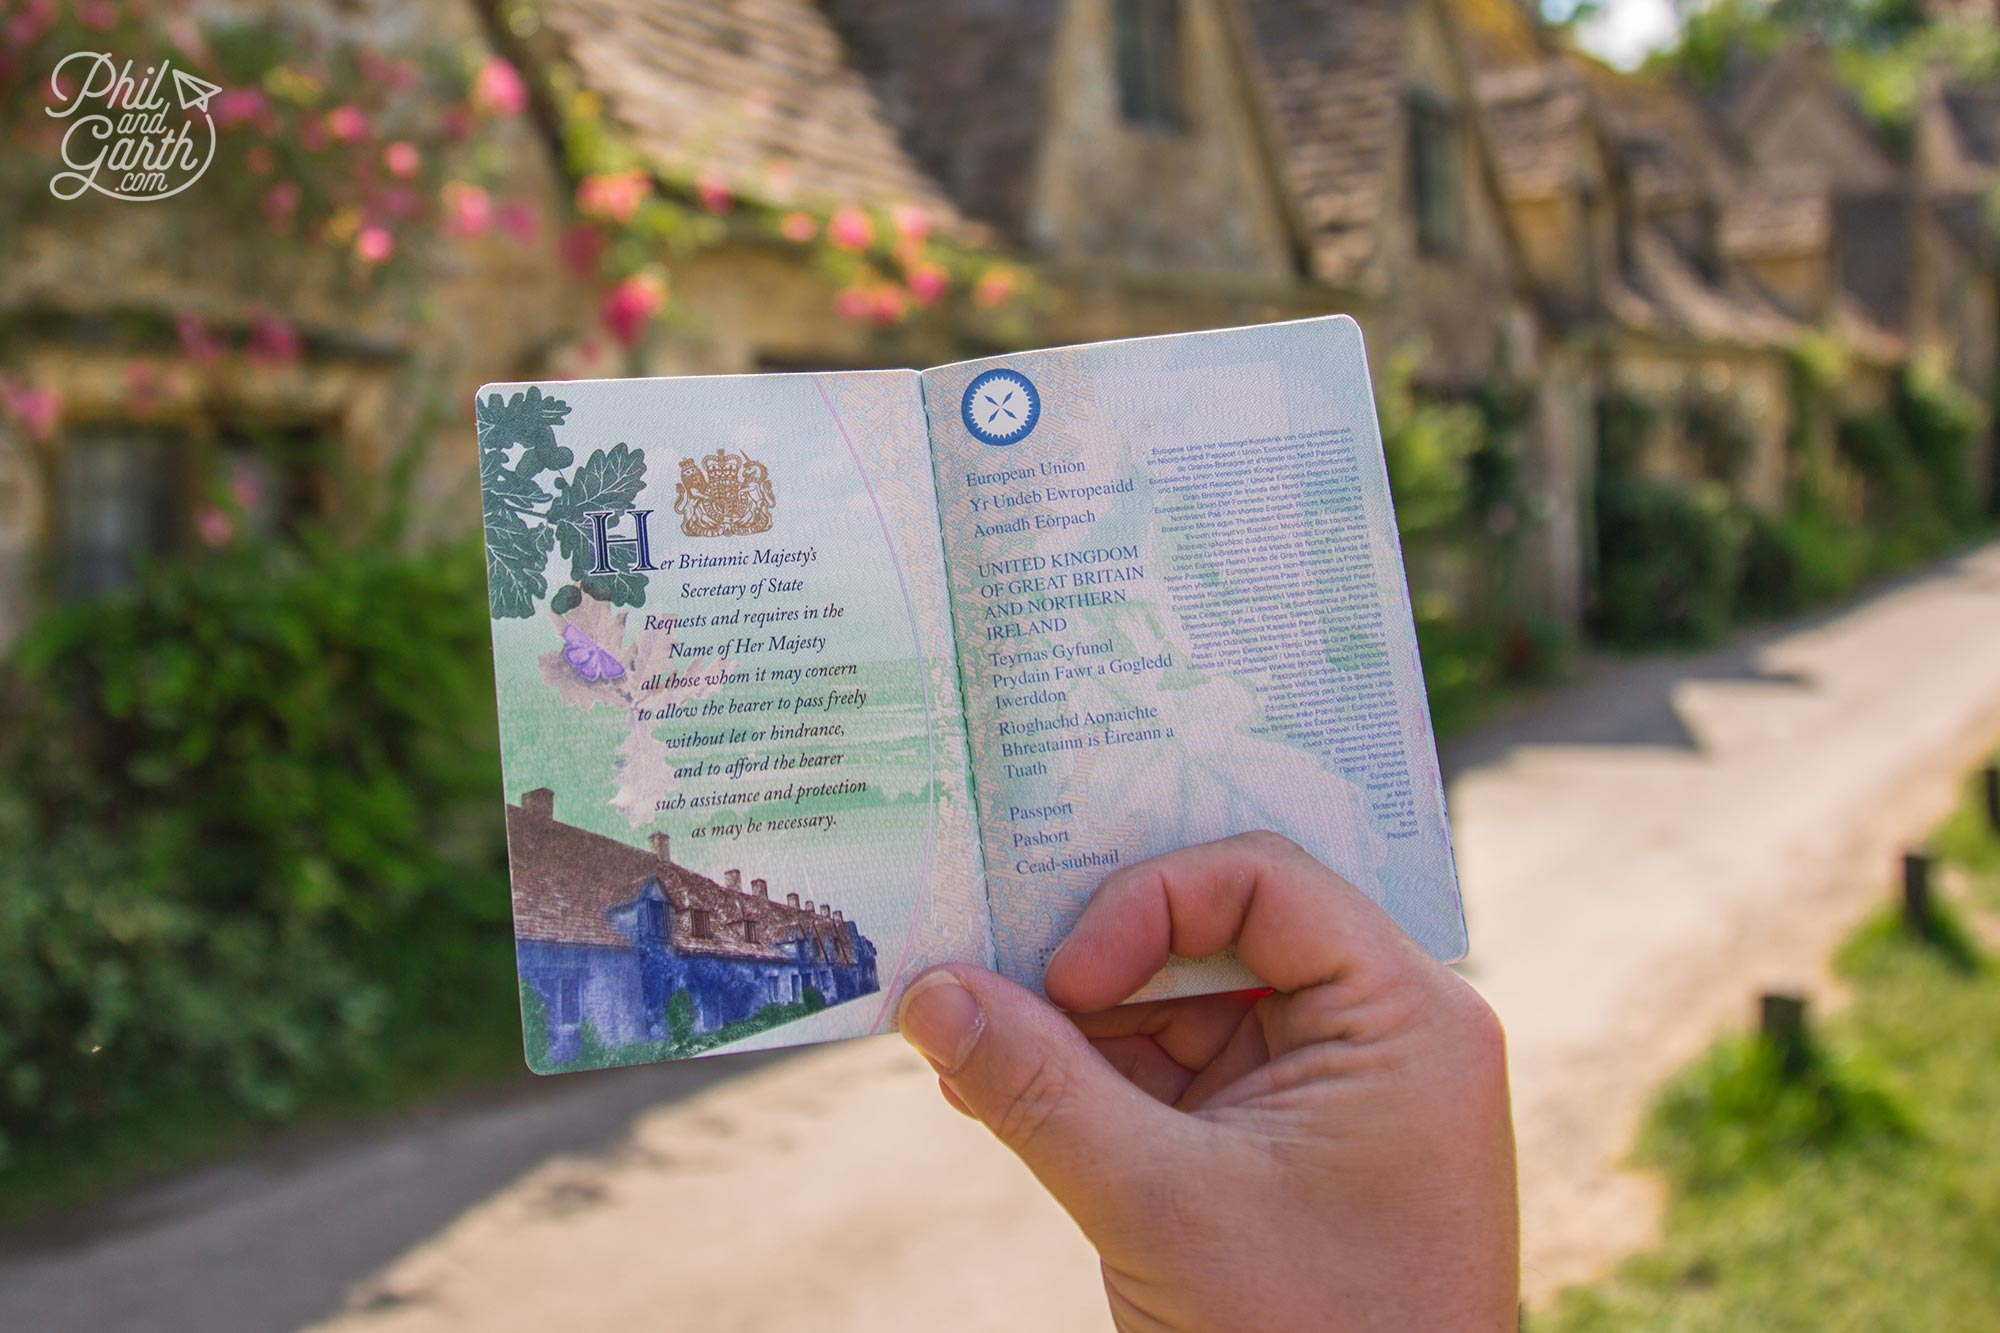 Arlington Row features in the United Kingdom passport